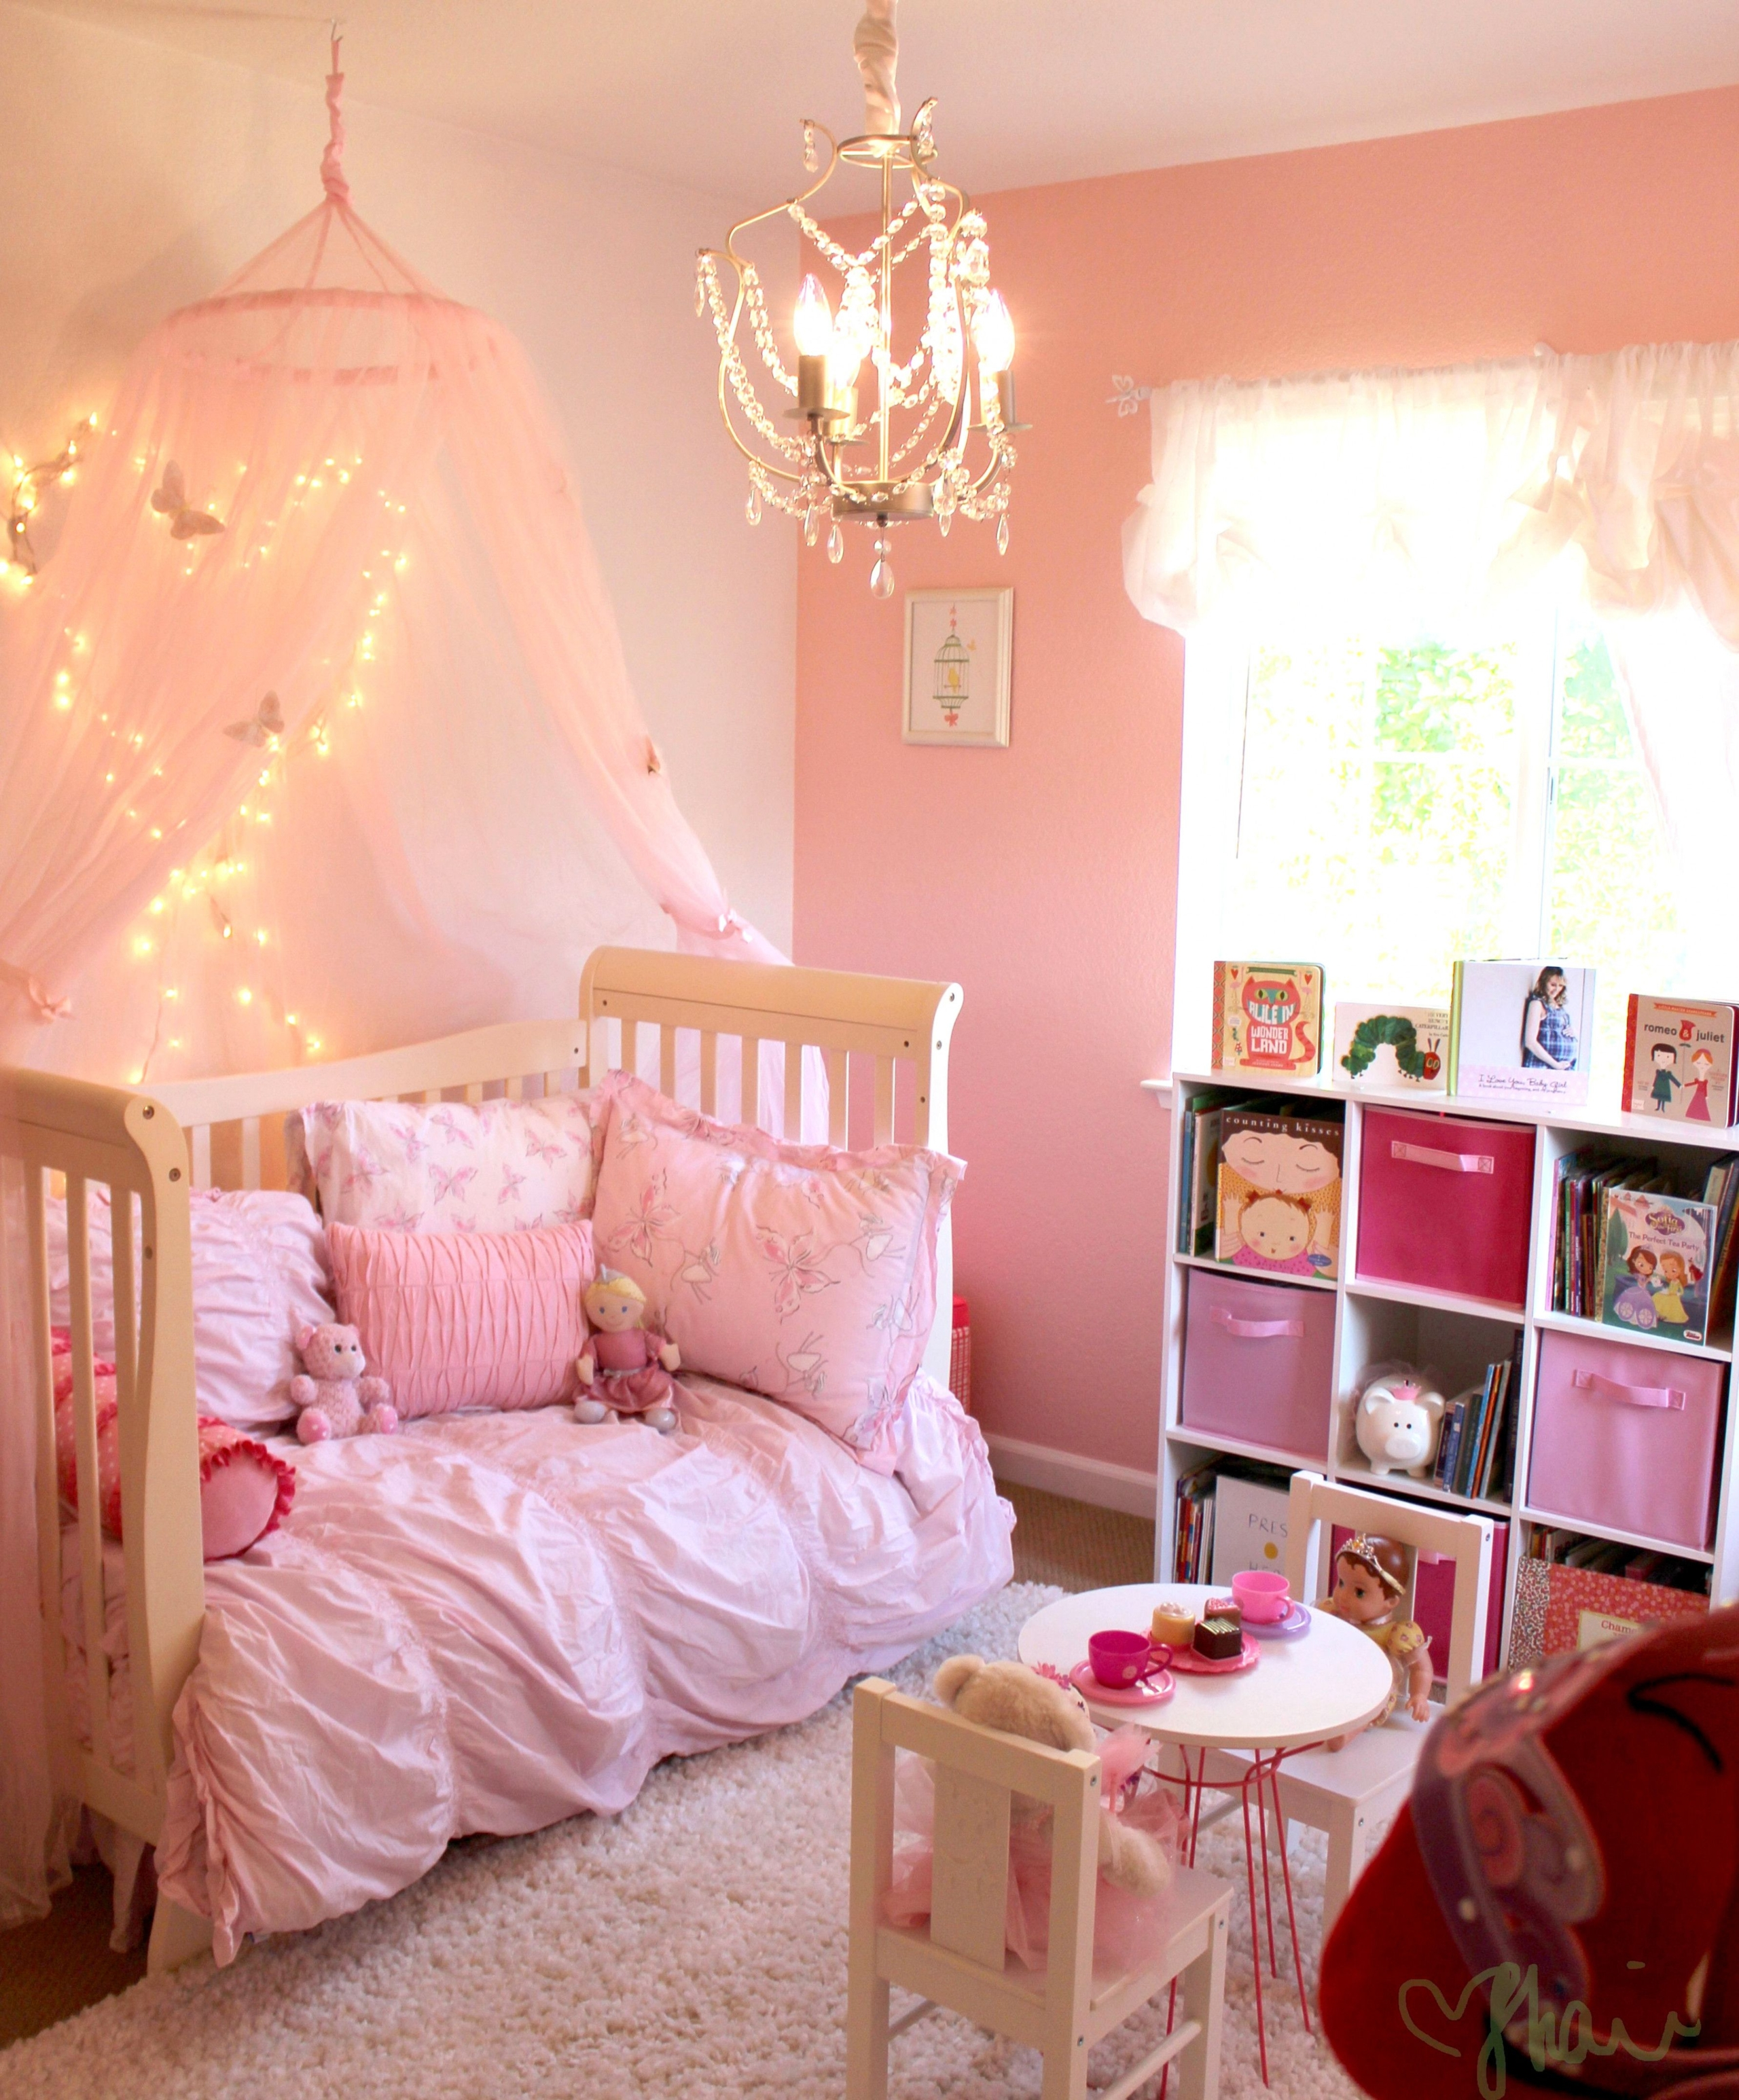 Toddler girl canopy beds & Daybed Bedding For Girls - Foter